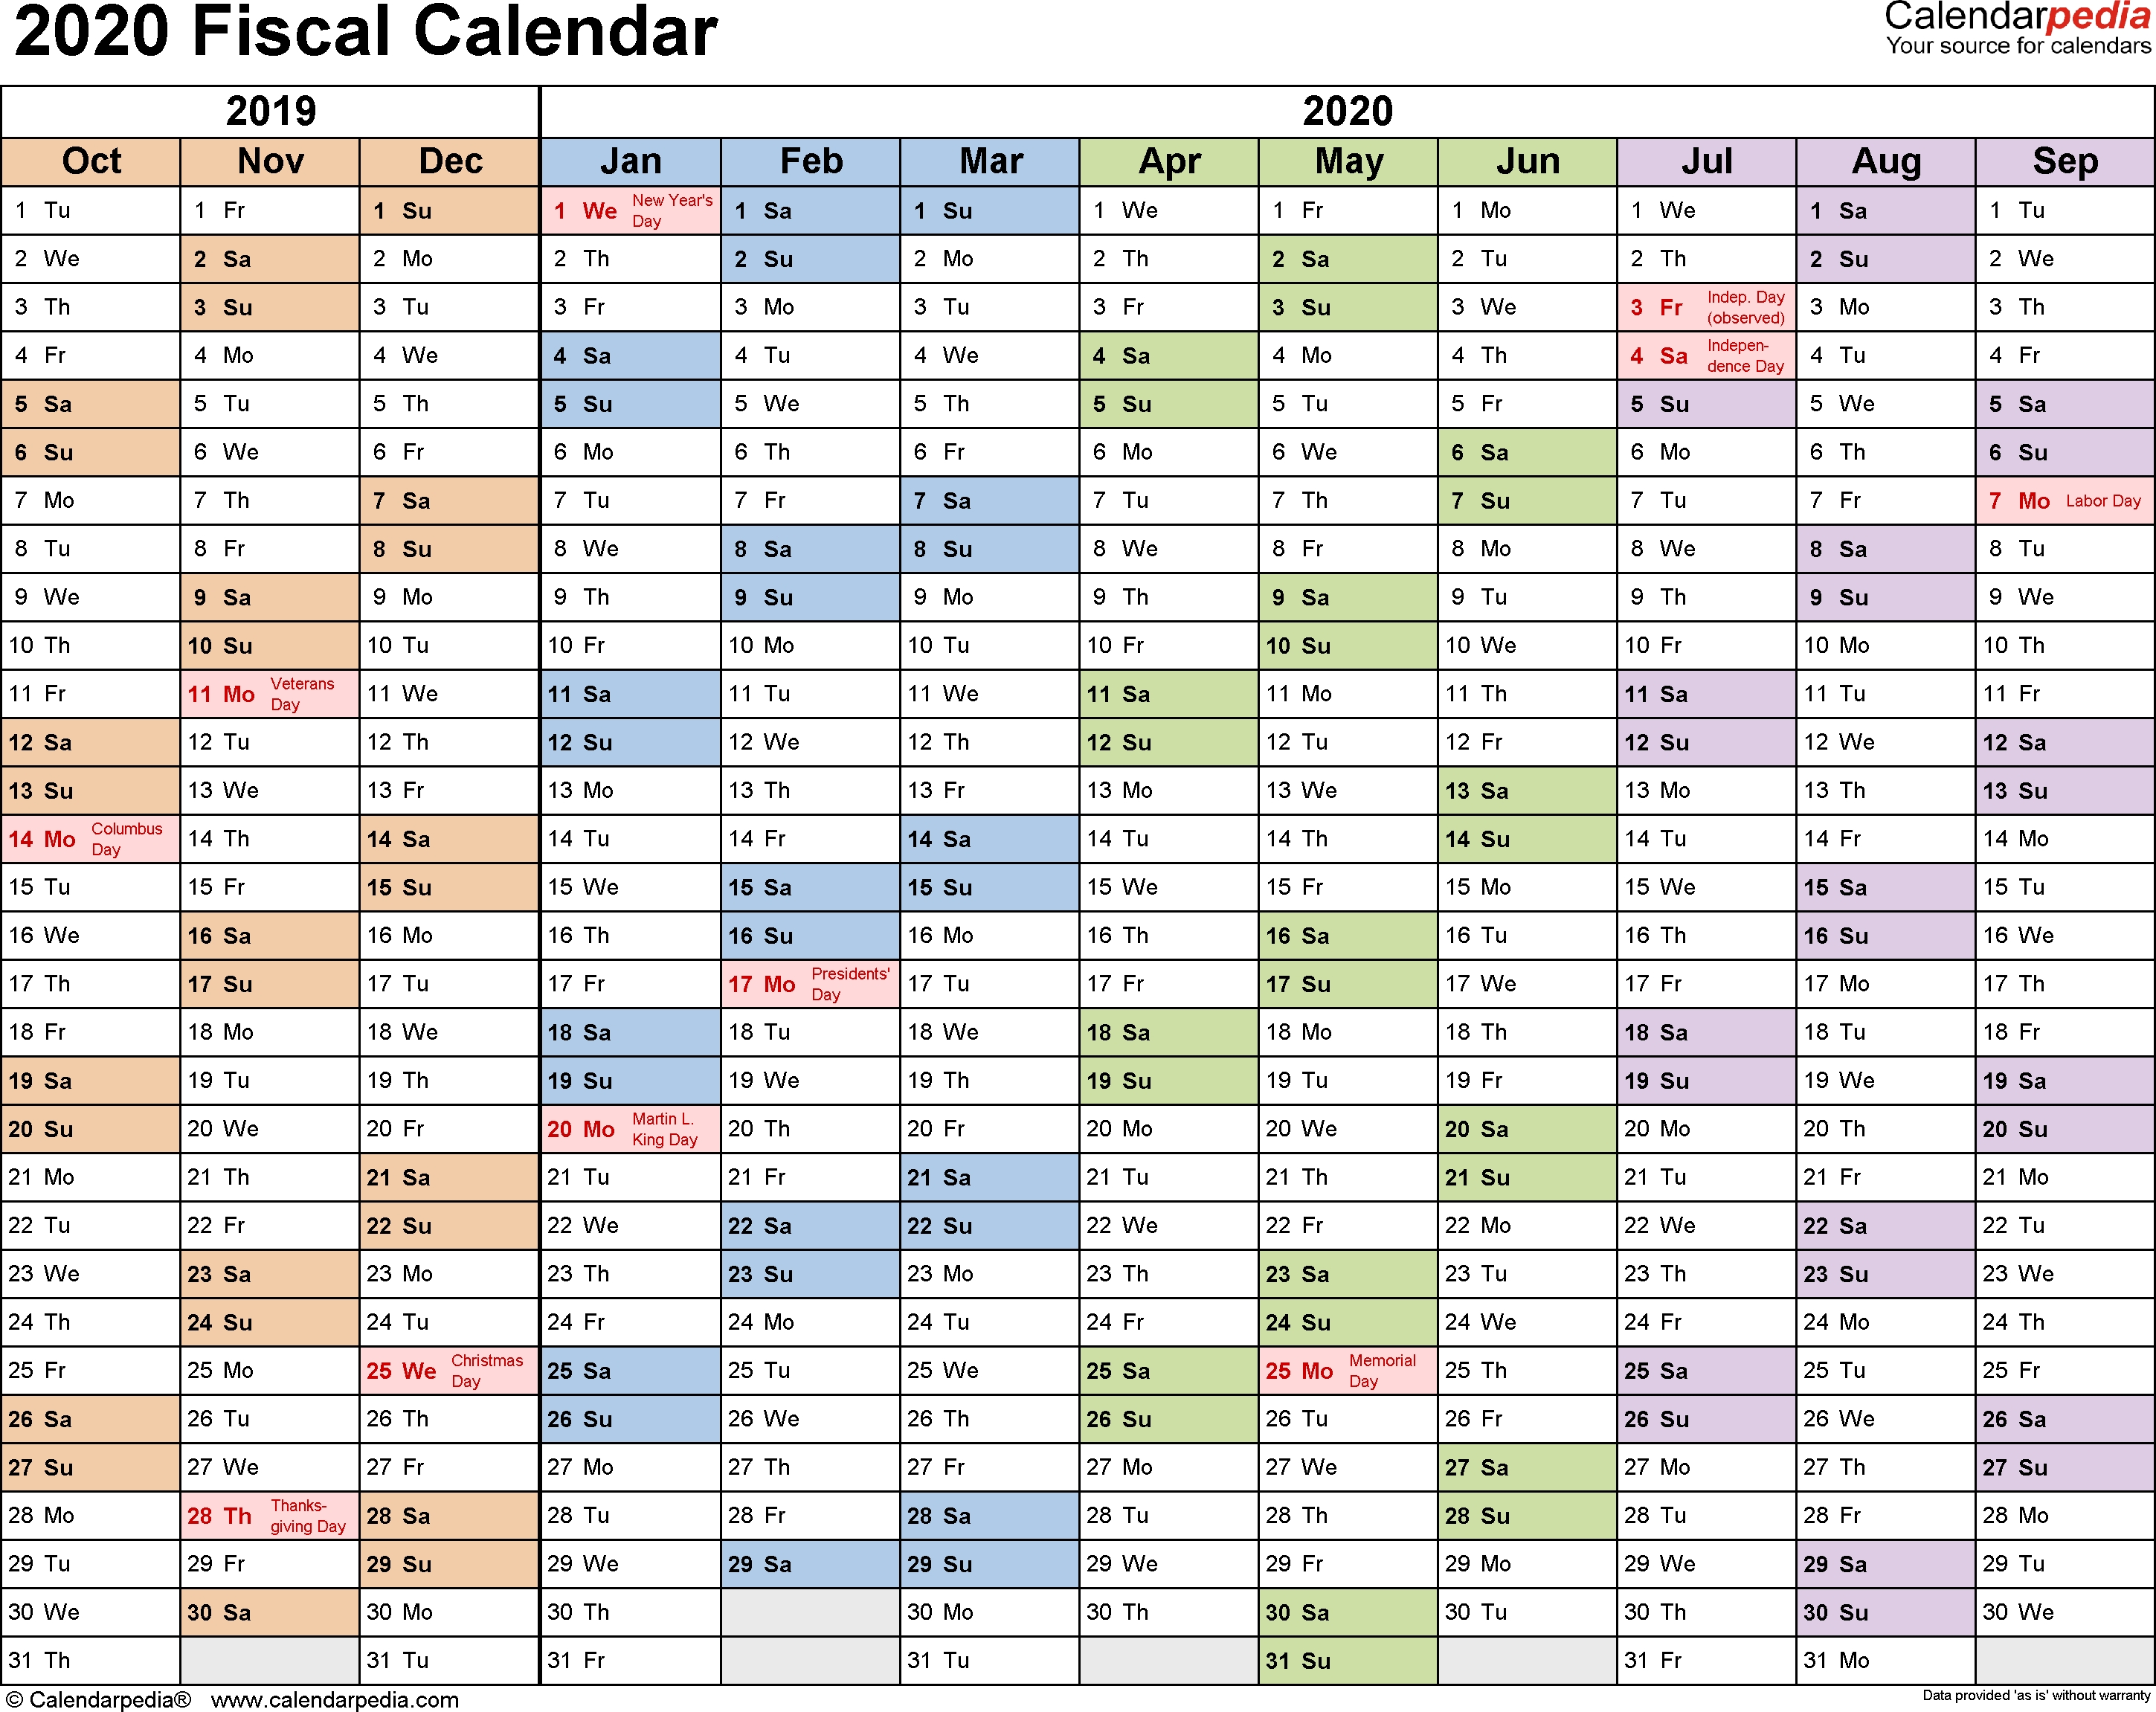 Fiscal Calendars 2020 As Free Printable Pdf Templates 2020 Calendar With Numbered Days